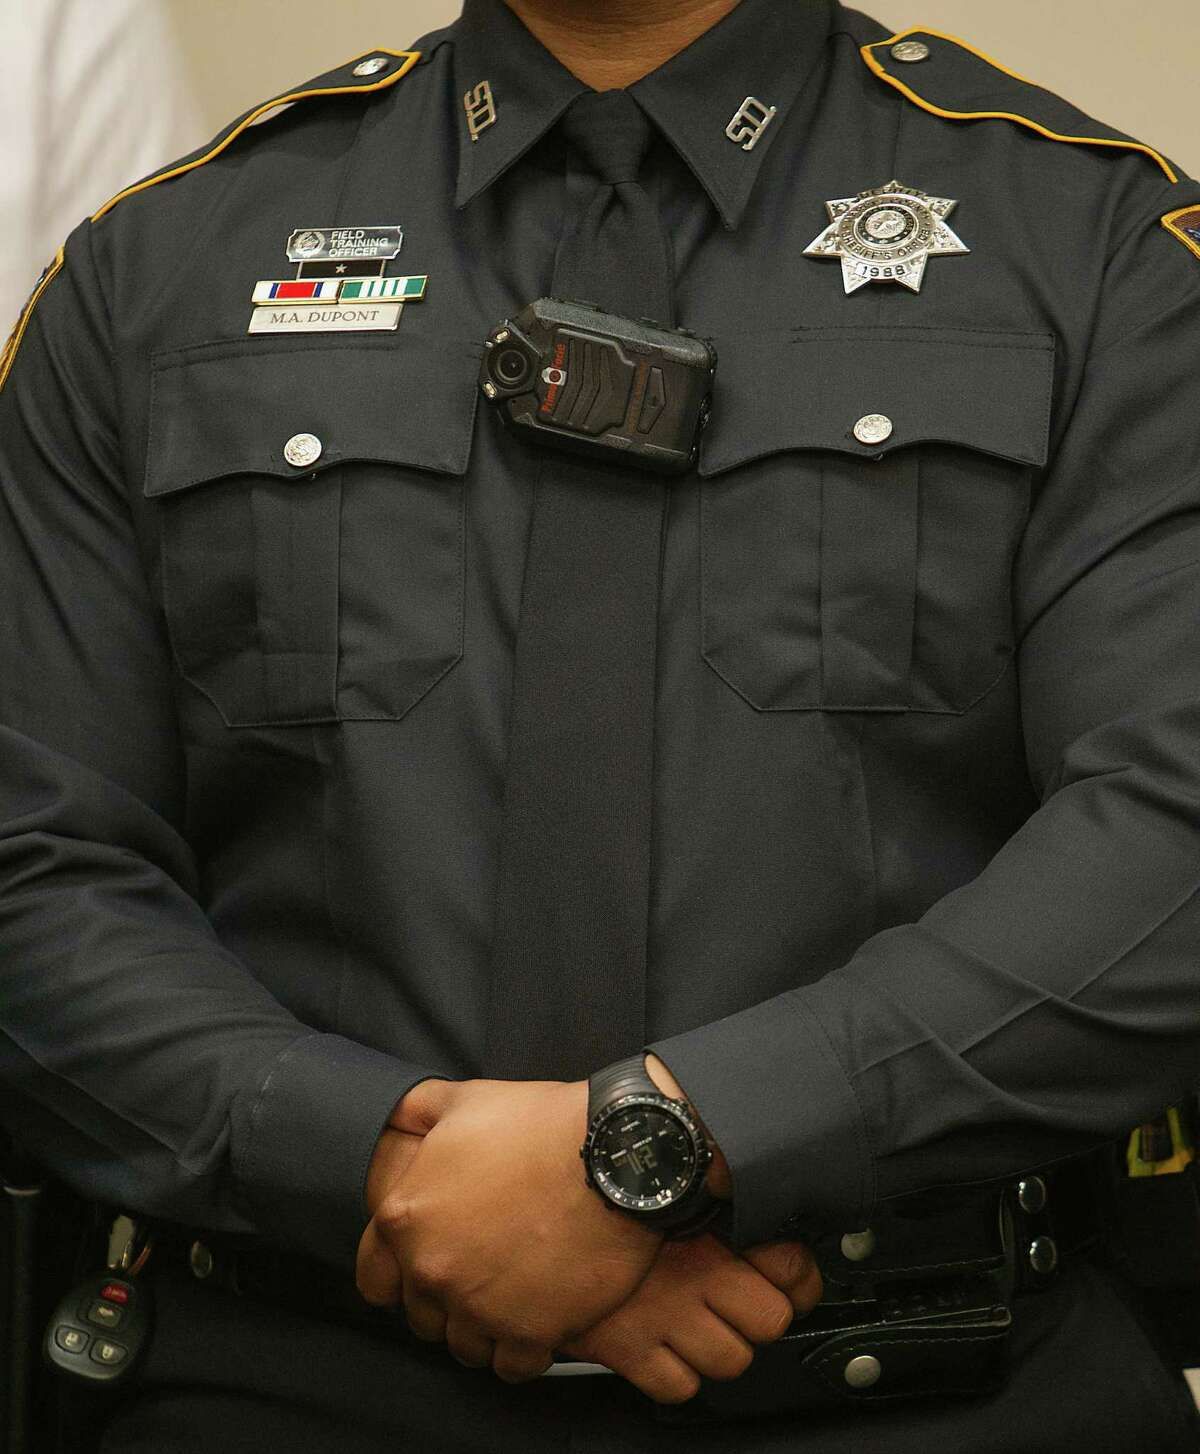 Body cameras such as this one worn by a Harris County sheriff's deputy, are being added to more local law enforcement agencies.